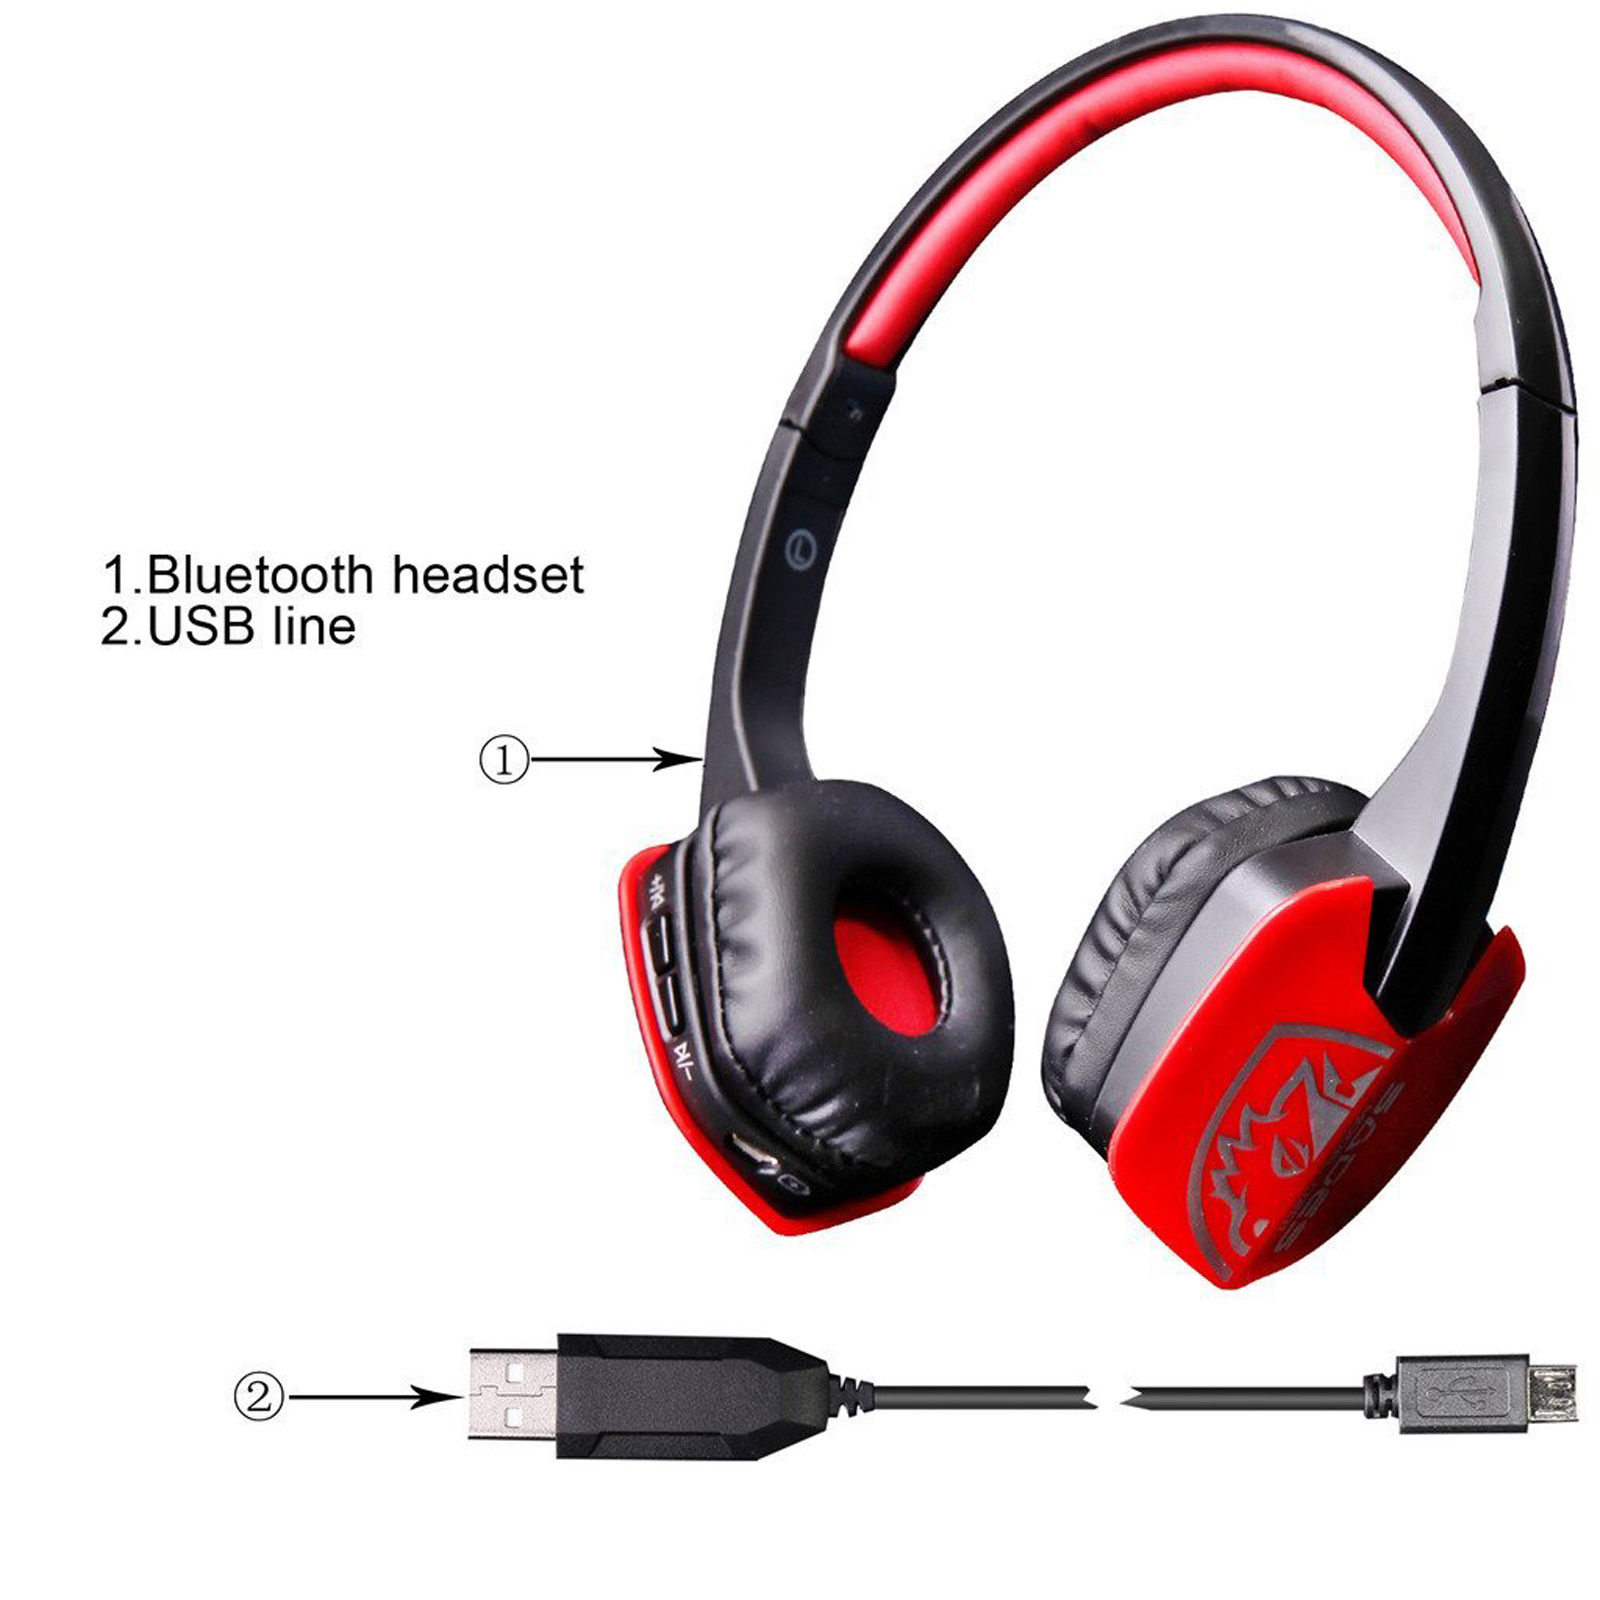 Sades Stereo Wireless Bluetooth Gaming Headset Headphone With Mic For PC Phone